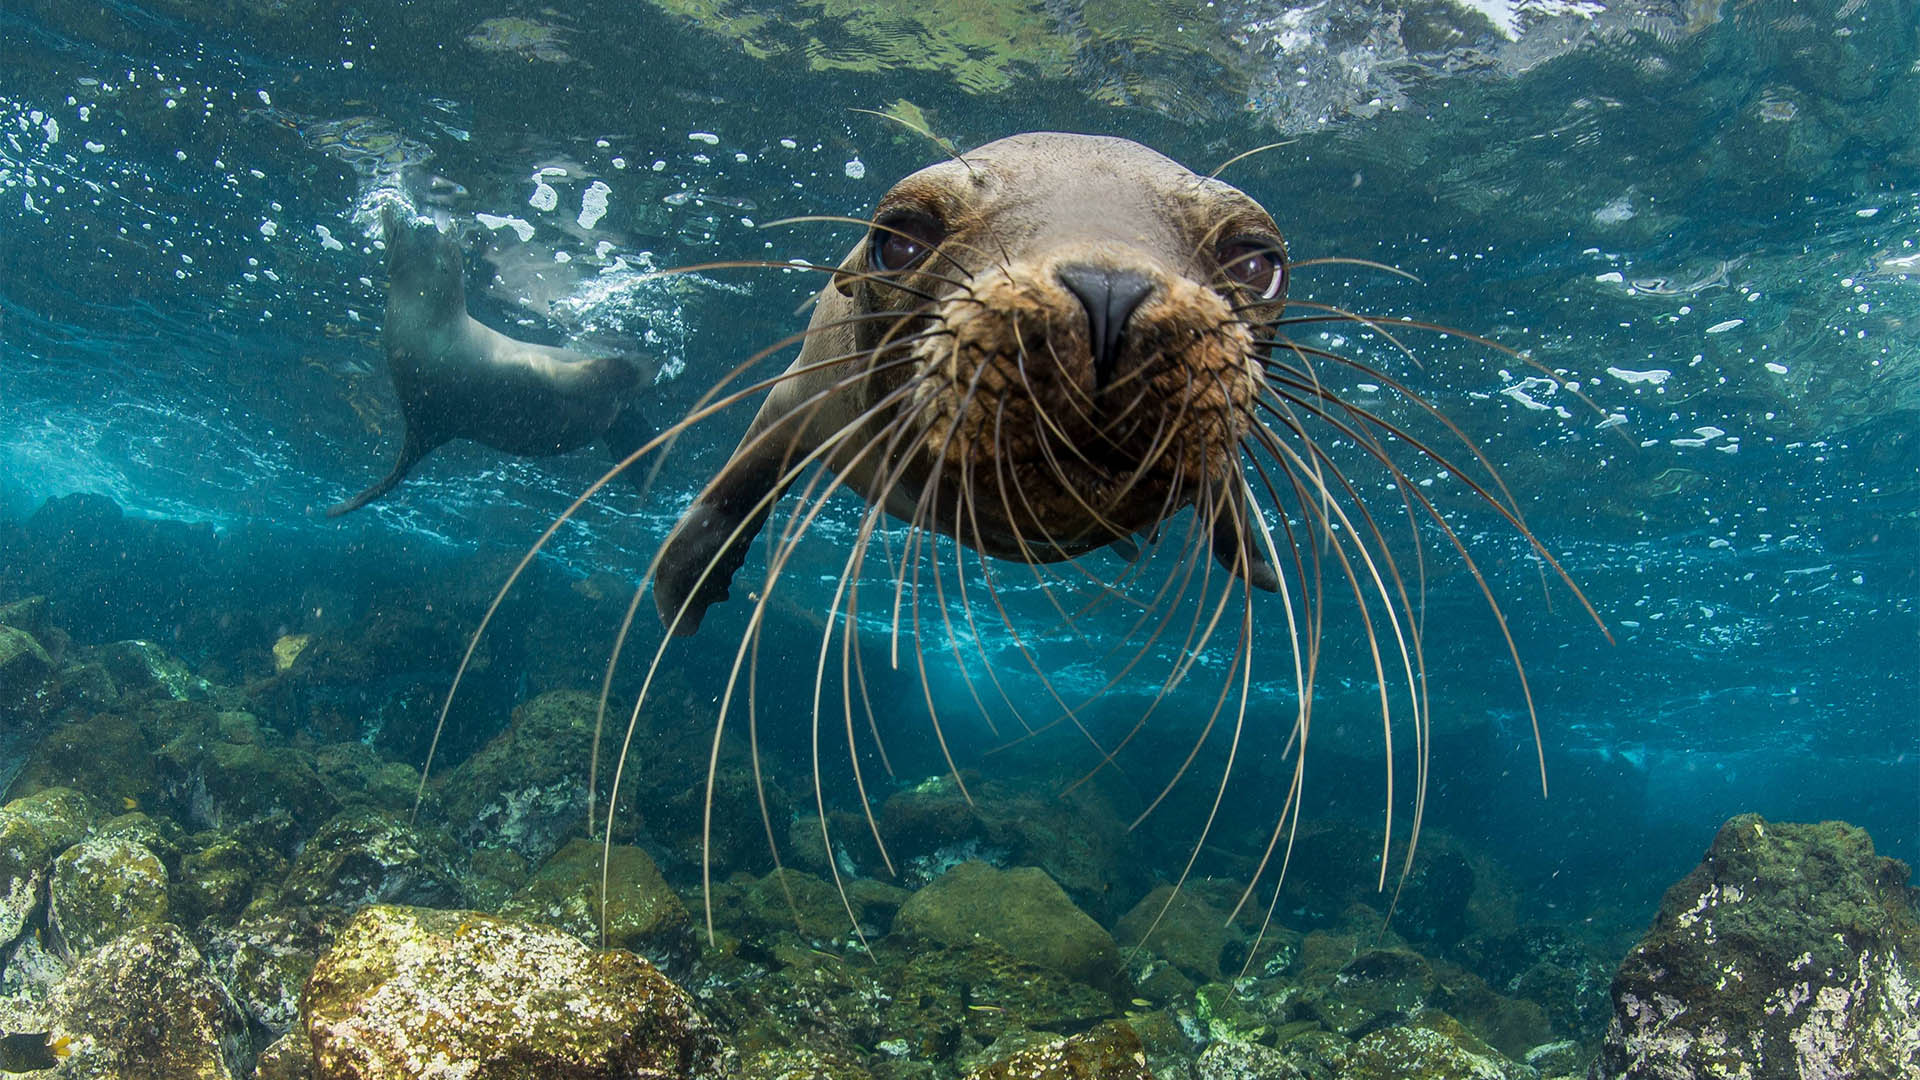 A young Galapagos sea lion approaches Enric Sala's camera curiousy off Santa Cruz Island. (Photo credit: Enric Sala)